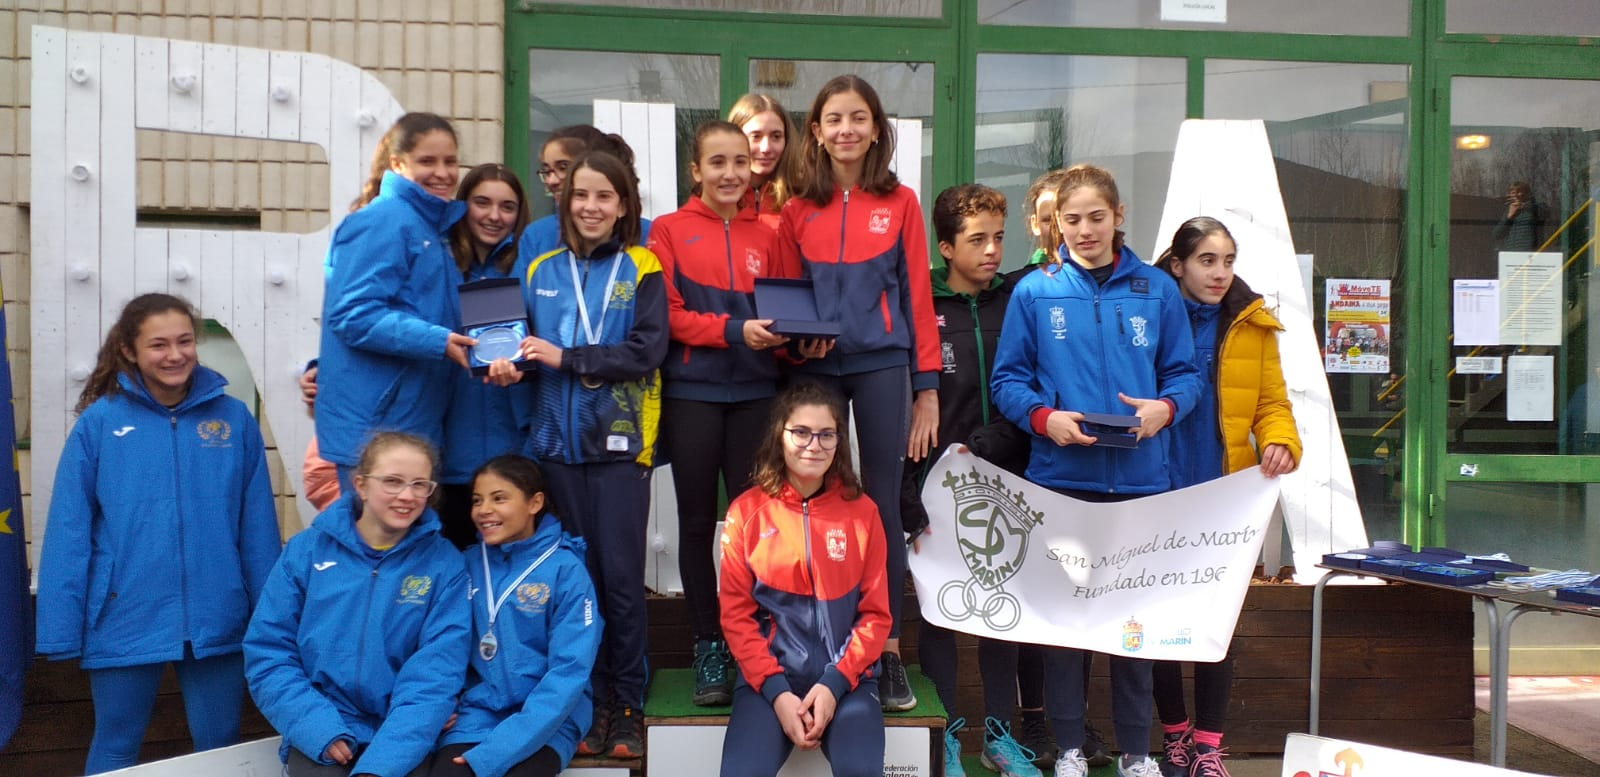 Gallego cross 2020 atletismo sub16